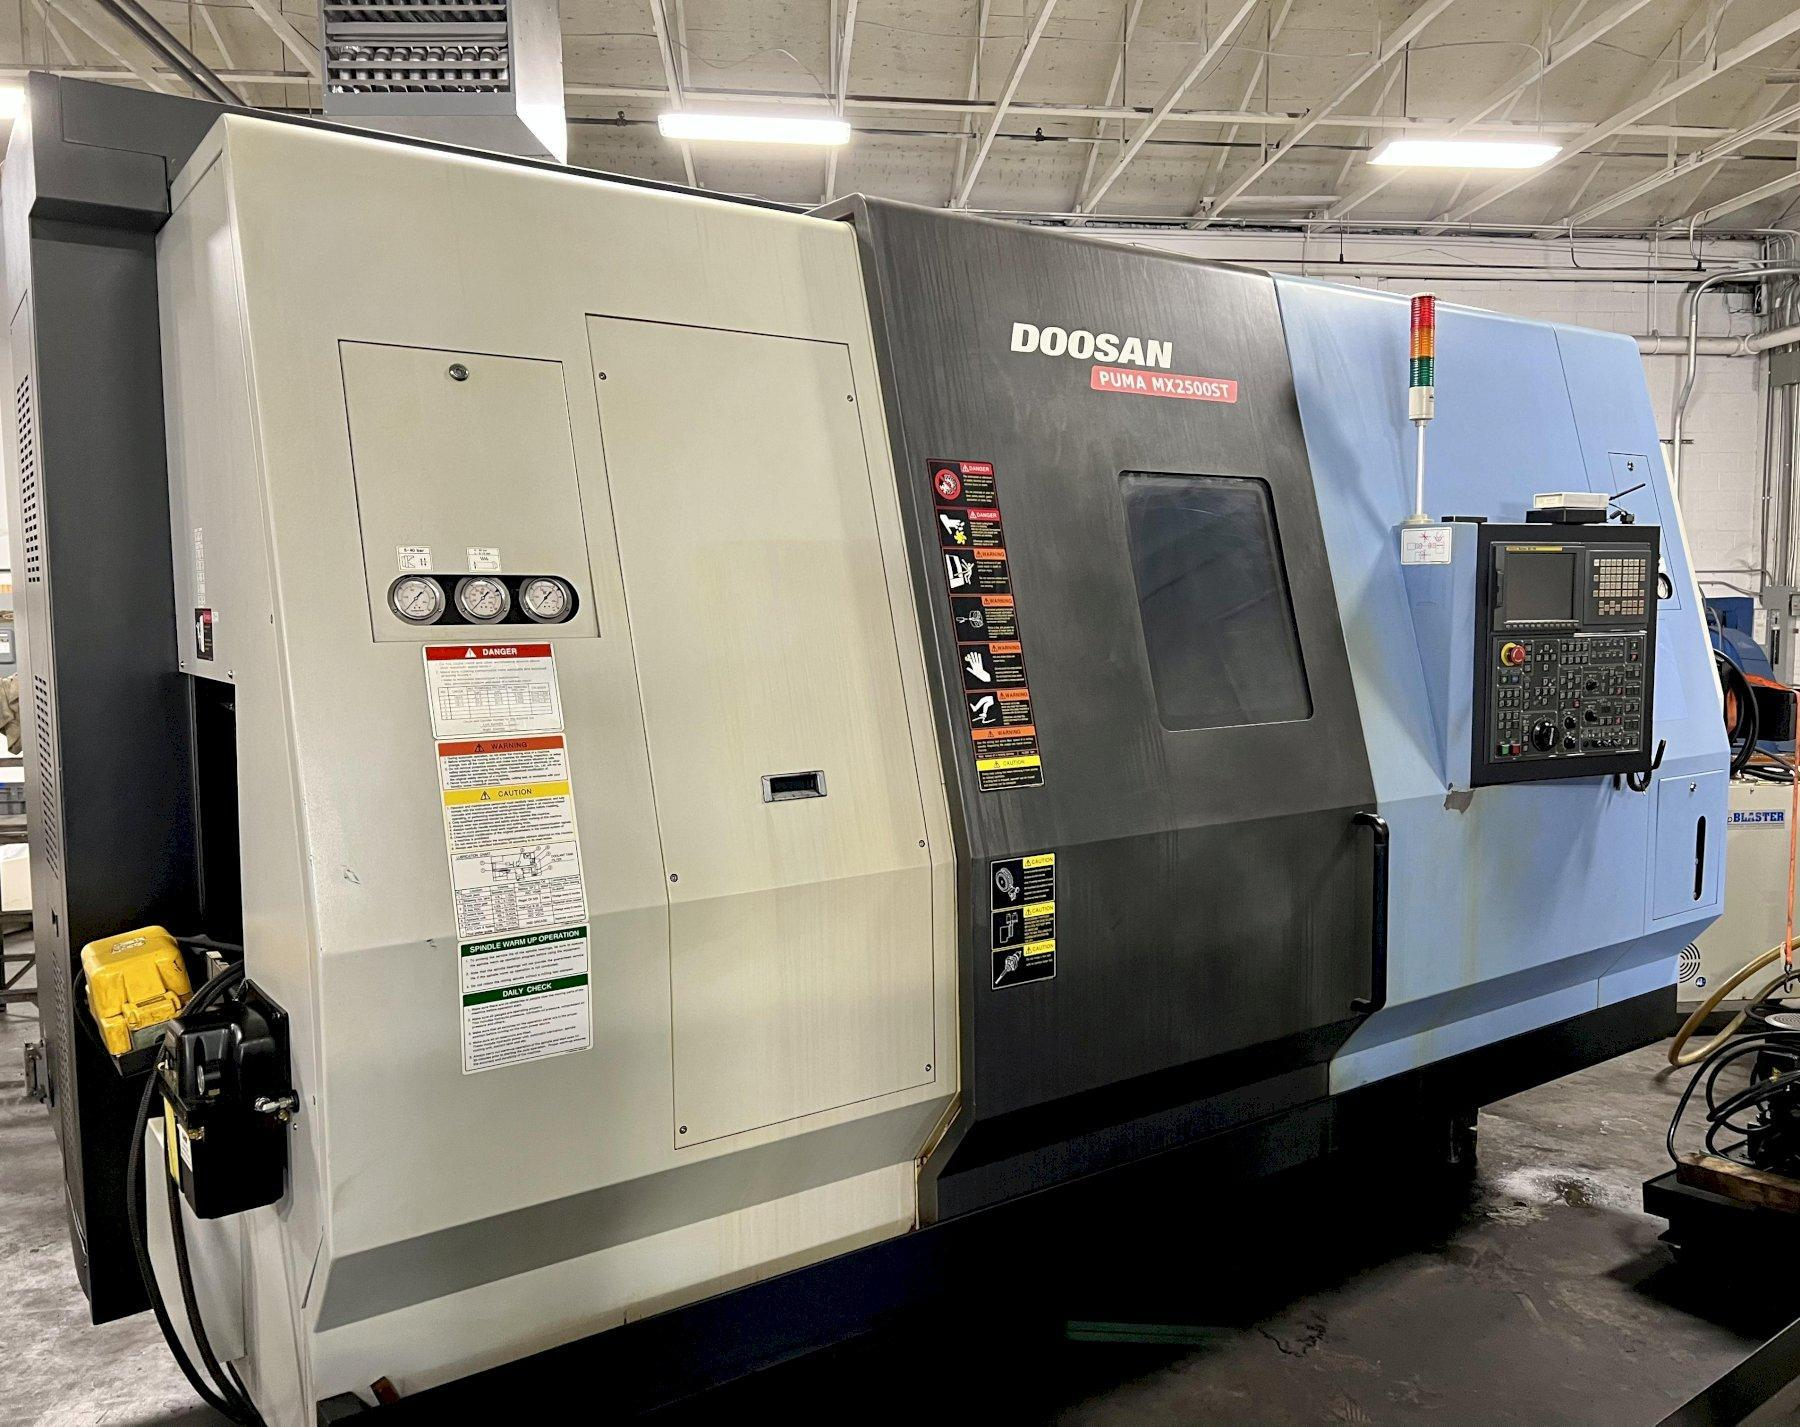 """DOOSAN PUMA MX2500ST 9-AXIS CNC TURNING CENTER, Fanuc 18i CNC Control, 29"""" Swing, 40"""" Center Distance, Main & Sub-Spindle Universal B-Axis Milling Spindle, 12 Position Lower Turret w/ Live Tooling, 40 Station Tool Changer, New 2008."""